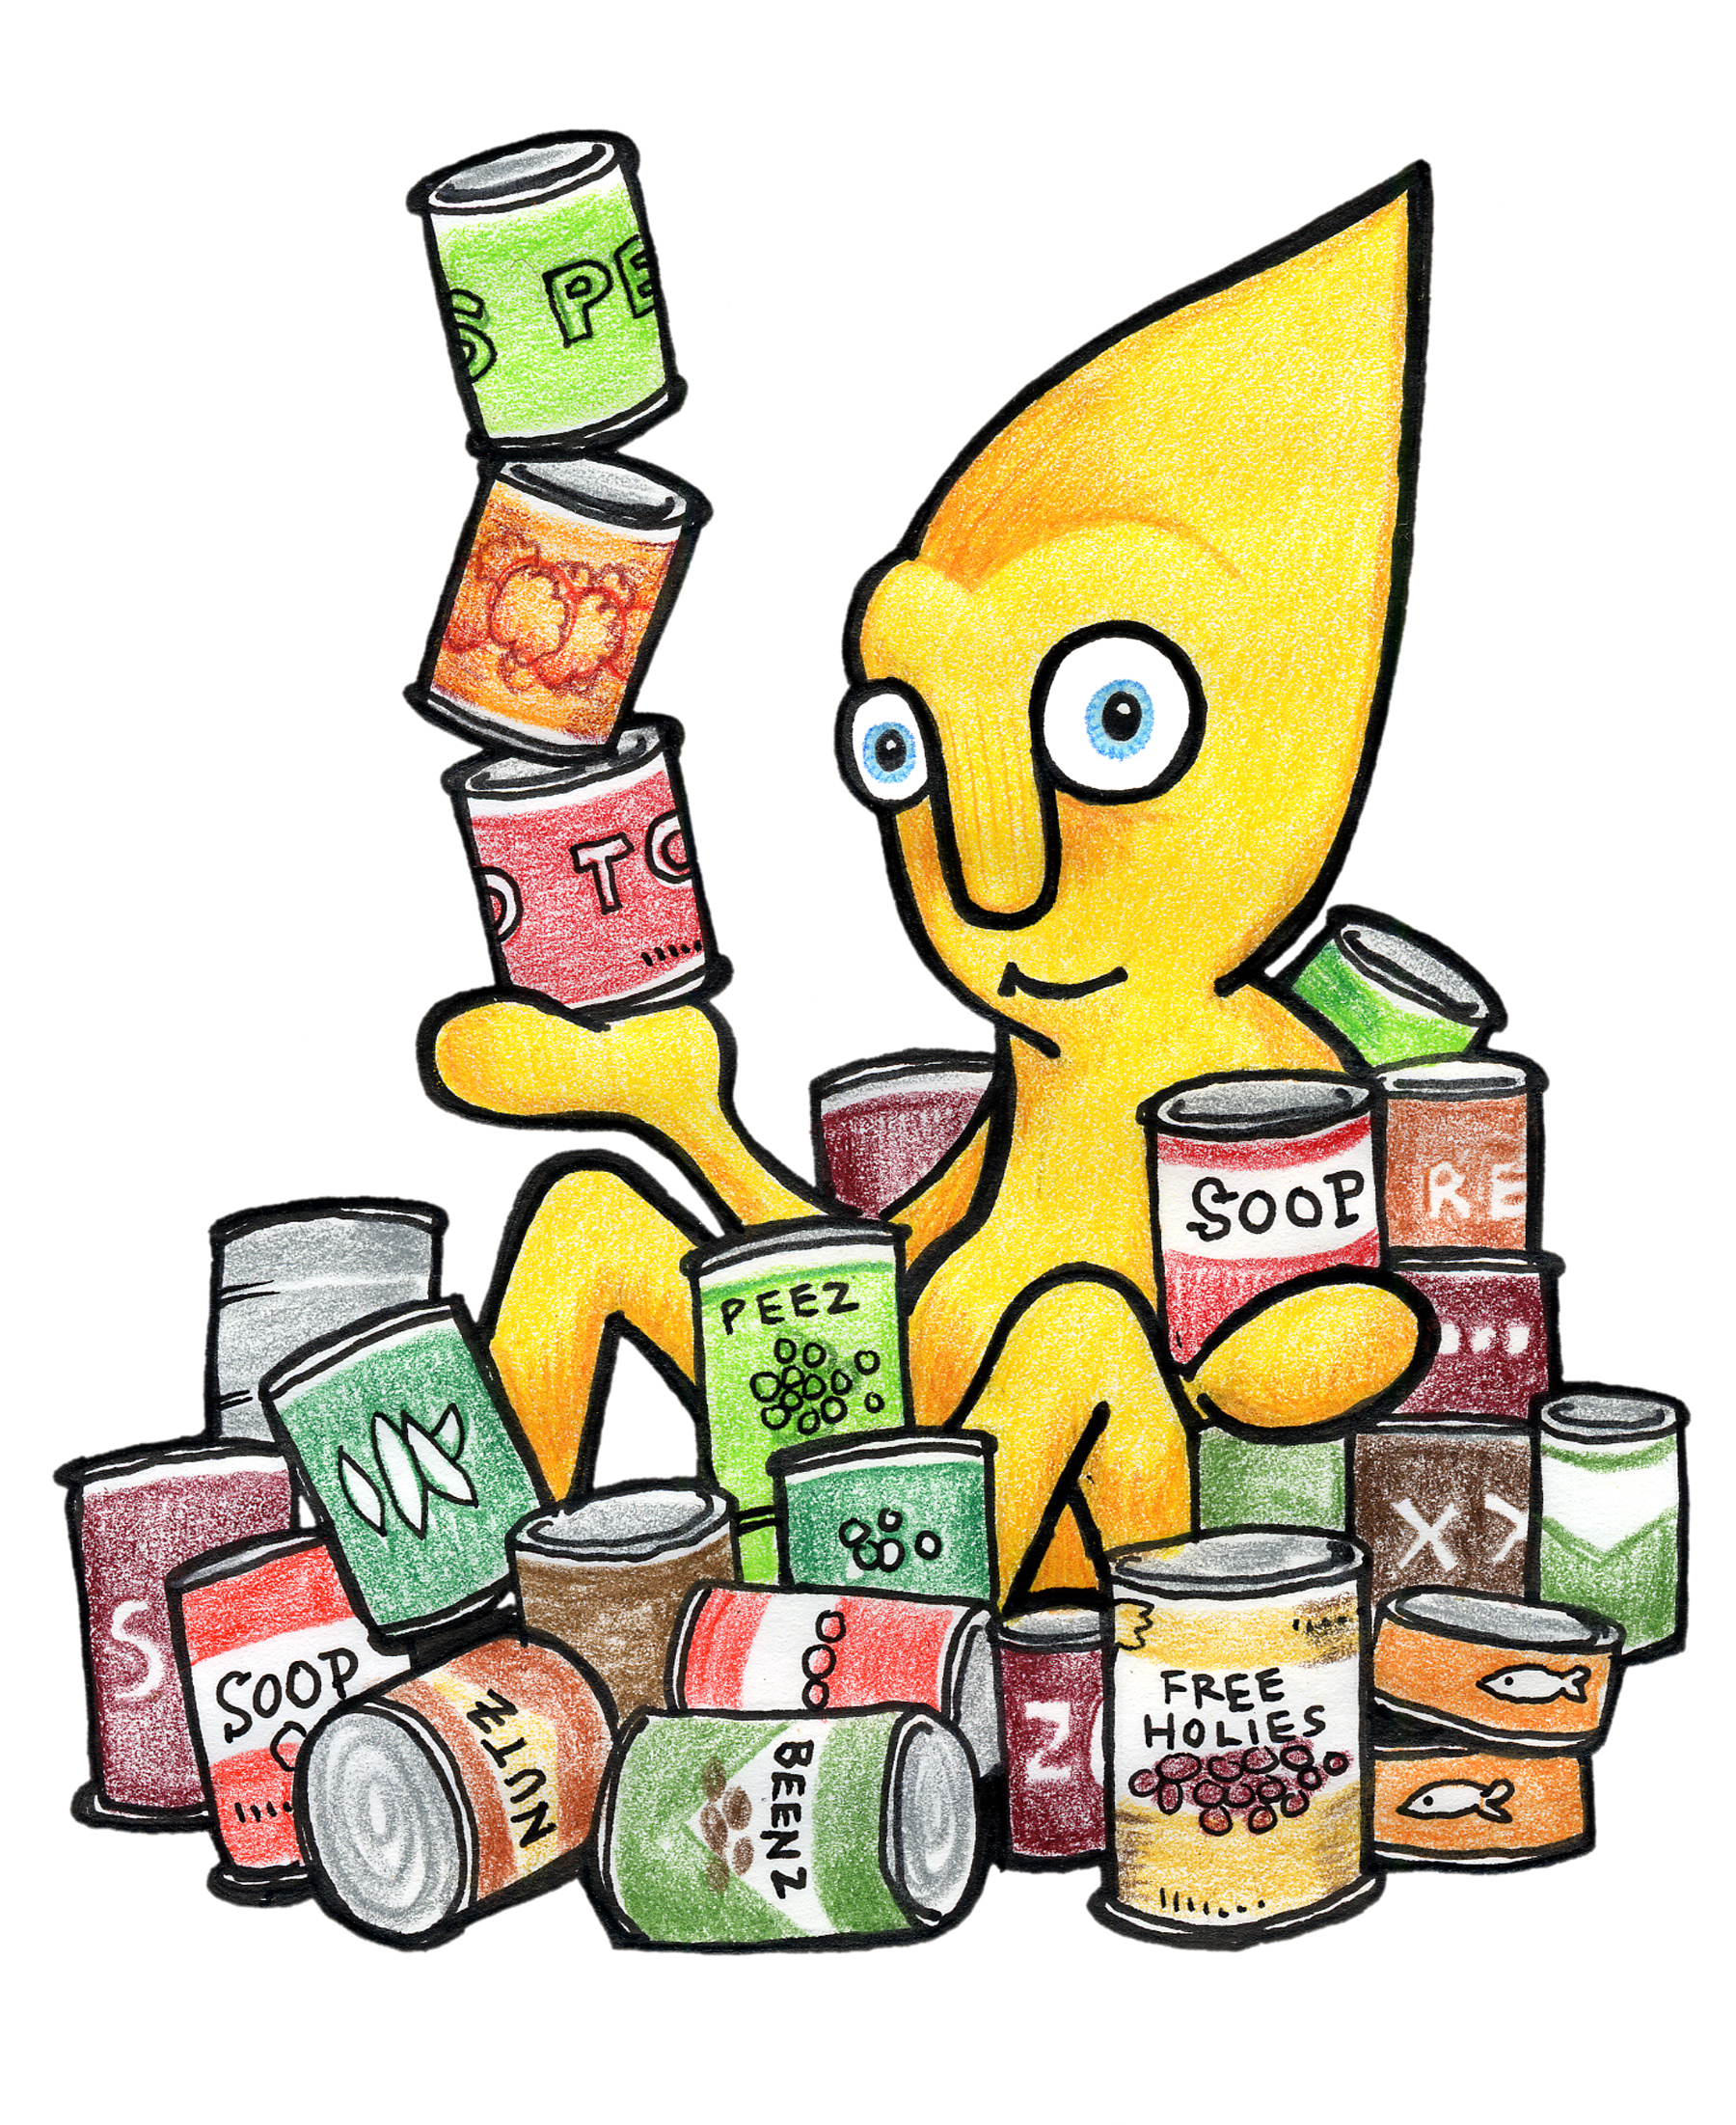 Clipart for food drive image freeuse library Canned Food Drive Posters | Clipart Panda - Free Clipart Images image freeuse library